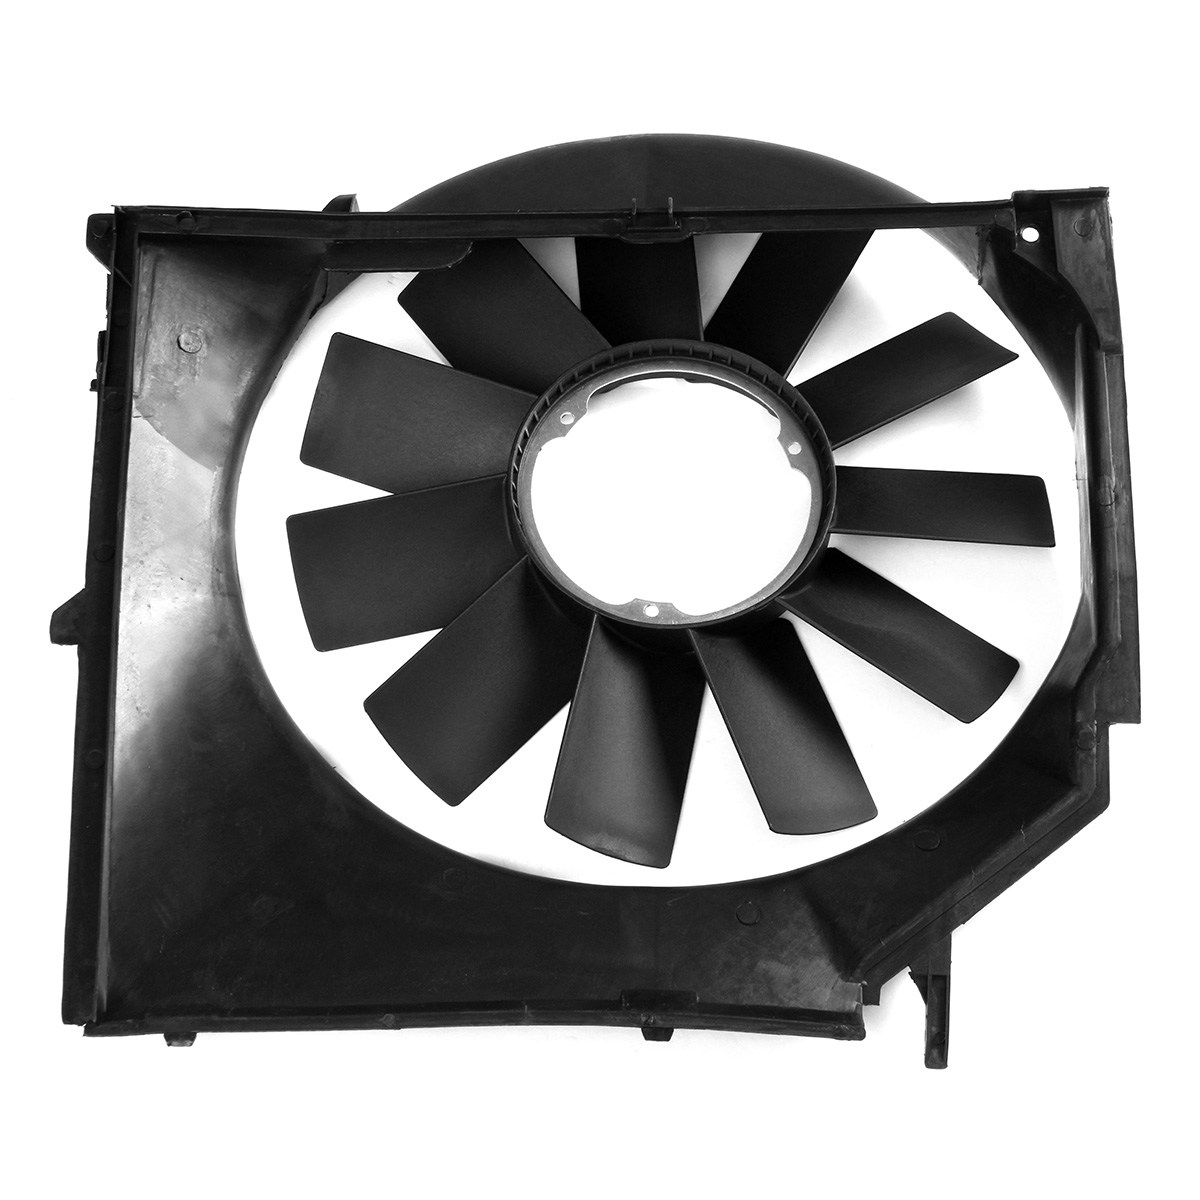 420mm Radiator Cooling Fan Shroud Engine Blade for BMW 320i 323Ci 325Ci  325xi 328i 330Ci 11521712058 17111436259-in Radiators & Parts from  Automobiles ...